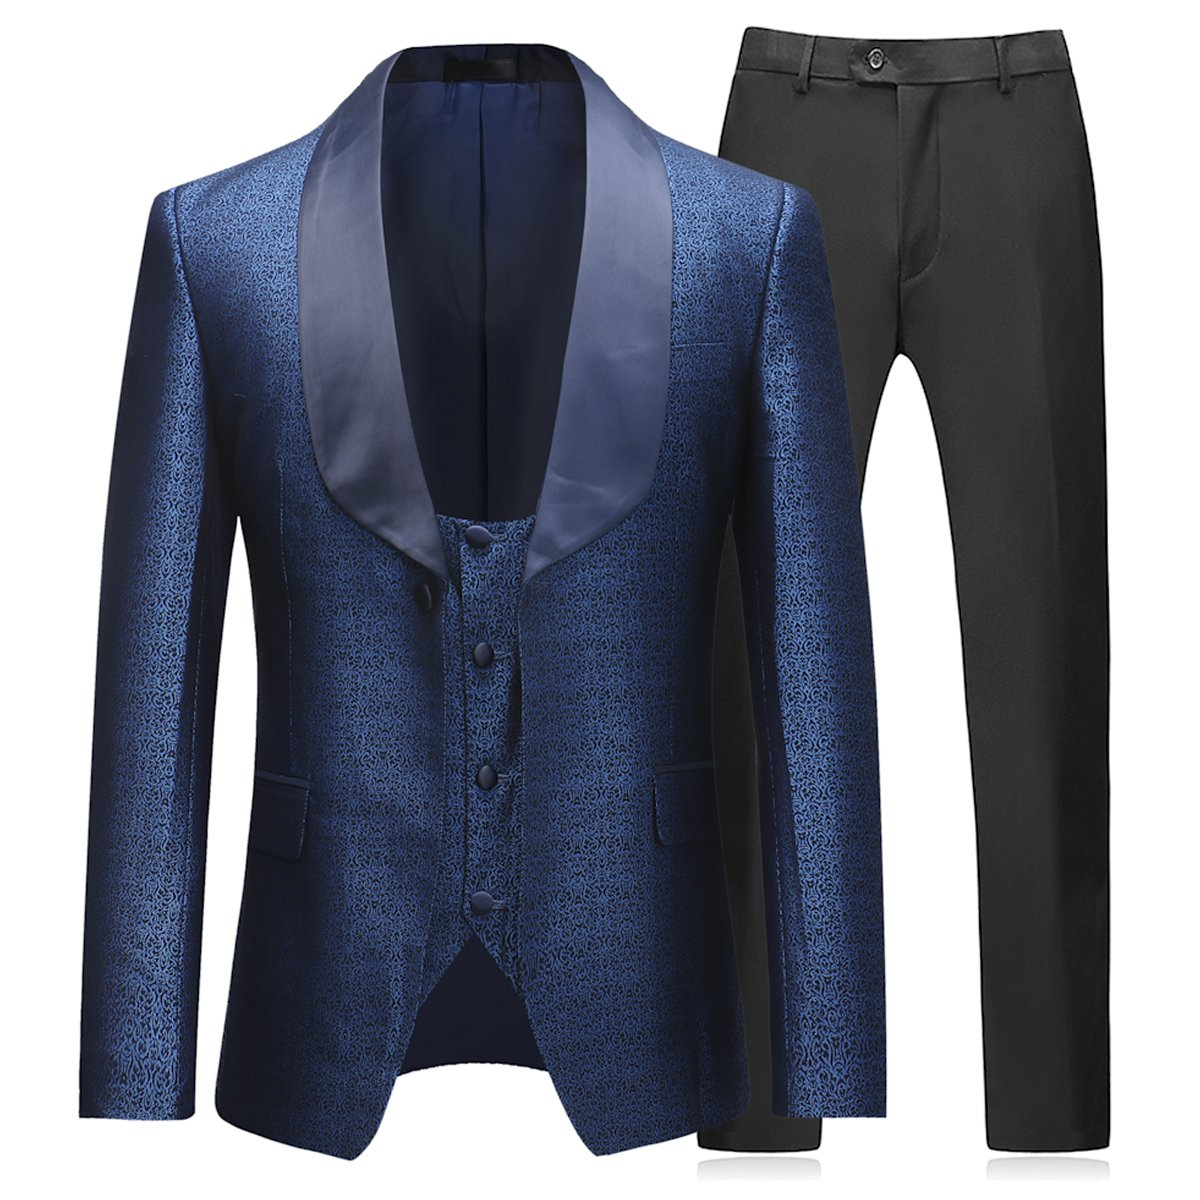 Boyland Mens 3 Piece Tuxedo Suits Dinner Party Prom Groom Tuxedos(Jacket+Vest+Pants) Blue by Boyland